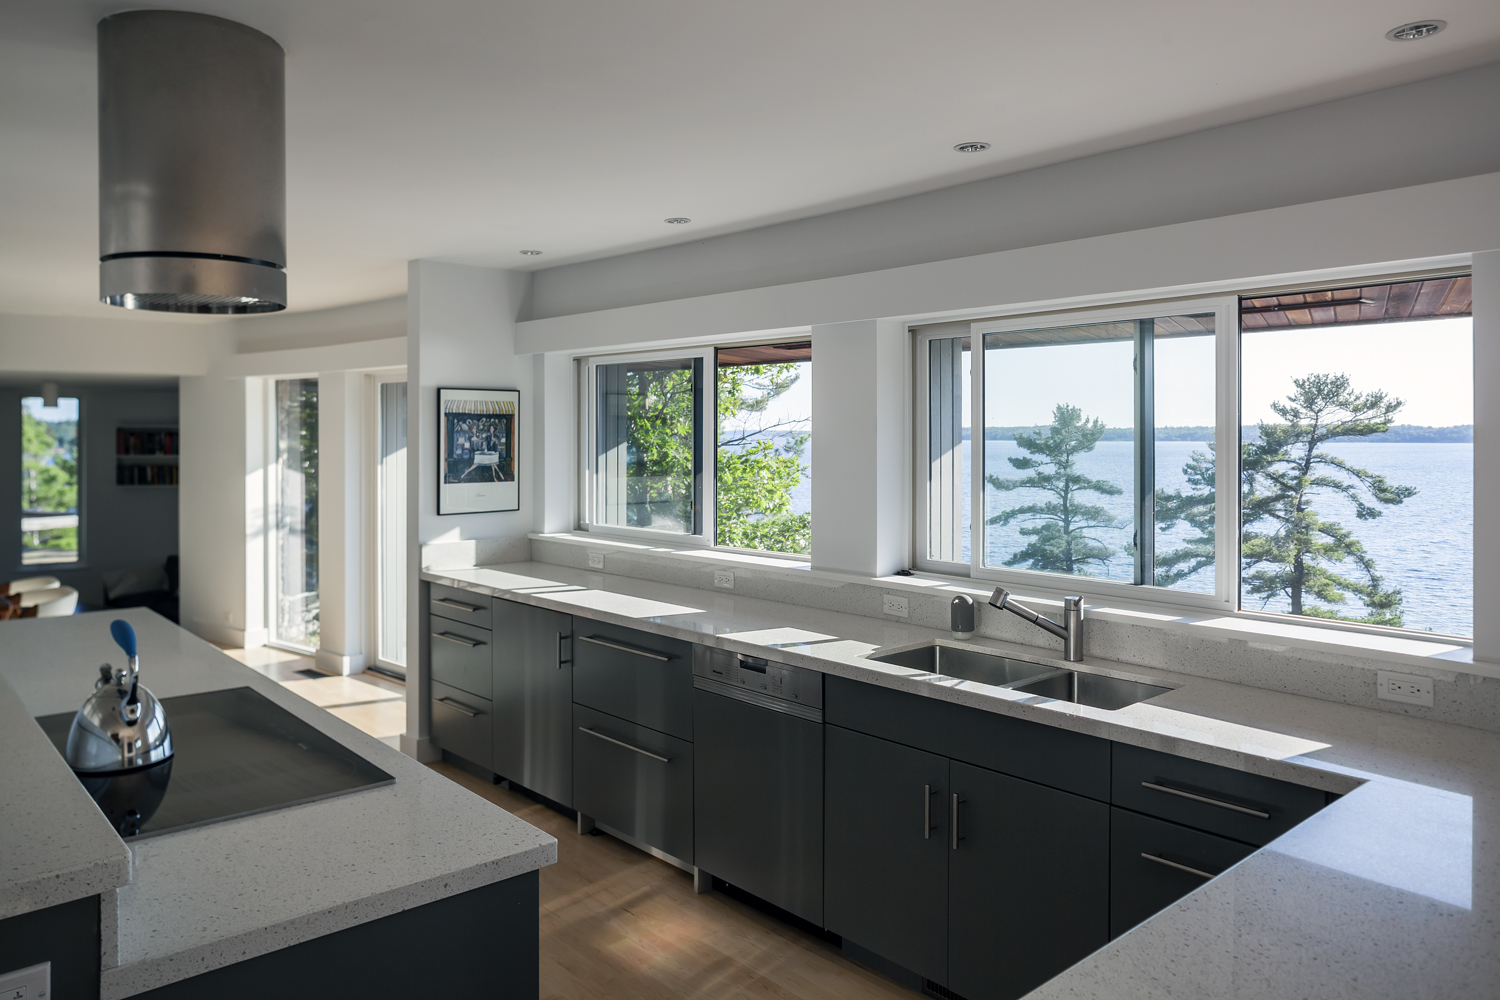 Parry Sound cottage with views to the Georgian Bay with quartz countertops and gray cabinetry